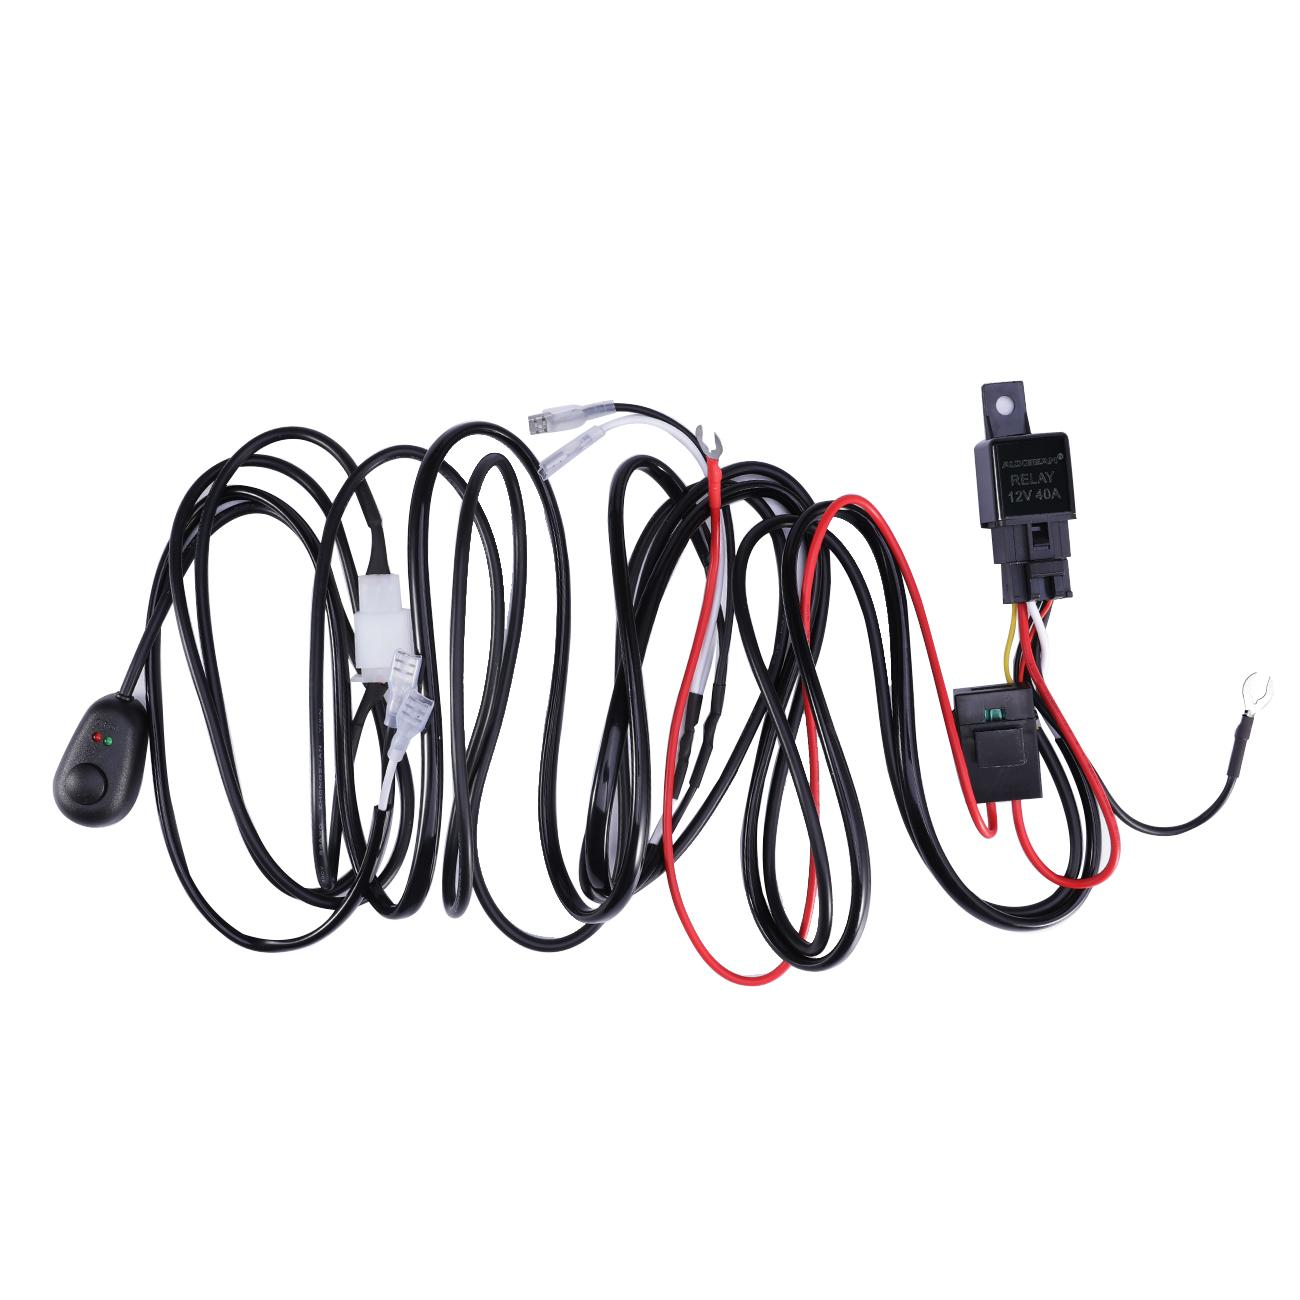 Auxbeam Universal Harness Kit with mouse style witch For